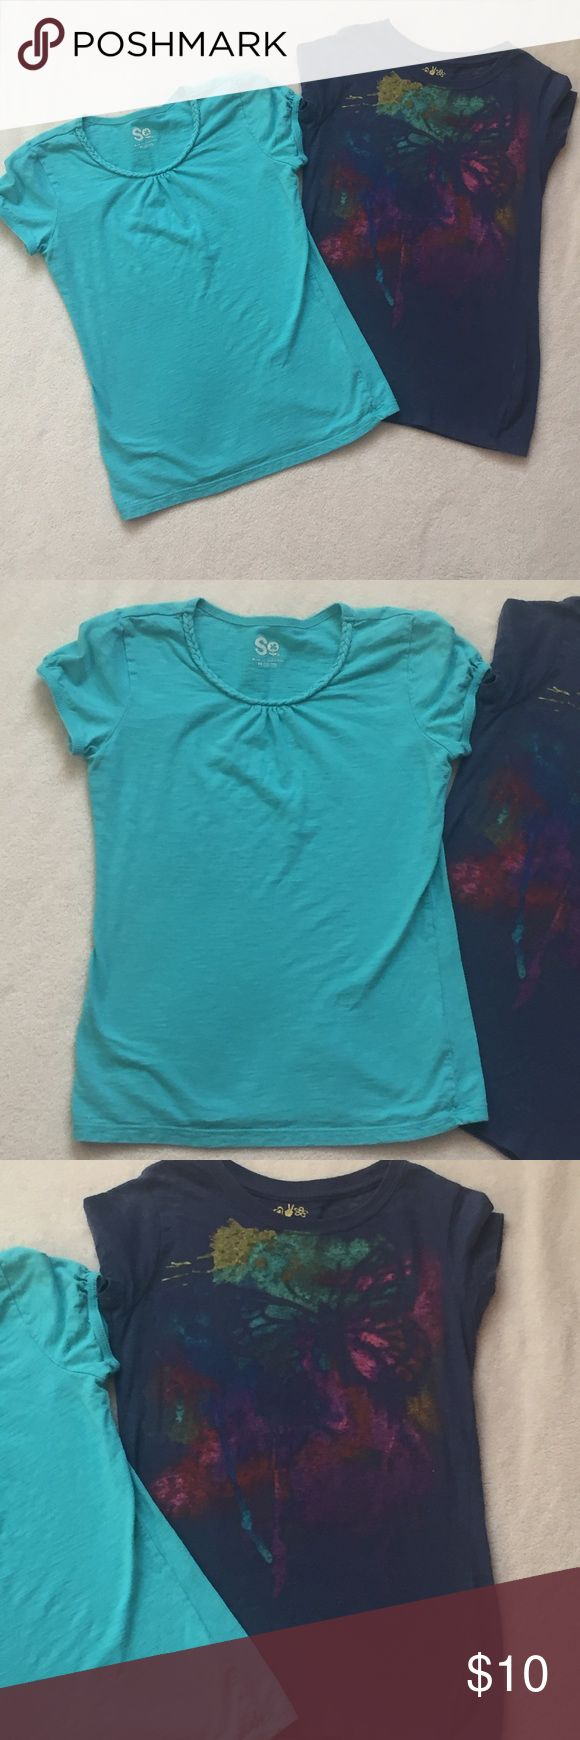 Bundle of 2 girls T-shirts ❤️️ Brand:  Turquoise shirt is SO by Kohl's, butterfly shirt is Mudd ❤️️Size: 10-12 ❤️️Color: turquoise and blue/multi colored ❤️️ Condition: used ❤️️Materials: 100% cotton ❤️️Notes: 💕Make an offer!💕 💕 Bundle 2+ items and save 30%!💕 Mudd Shirts & Tops Tees - Short Sleeve